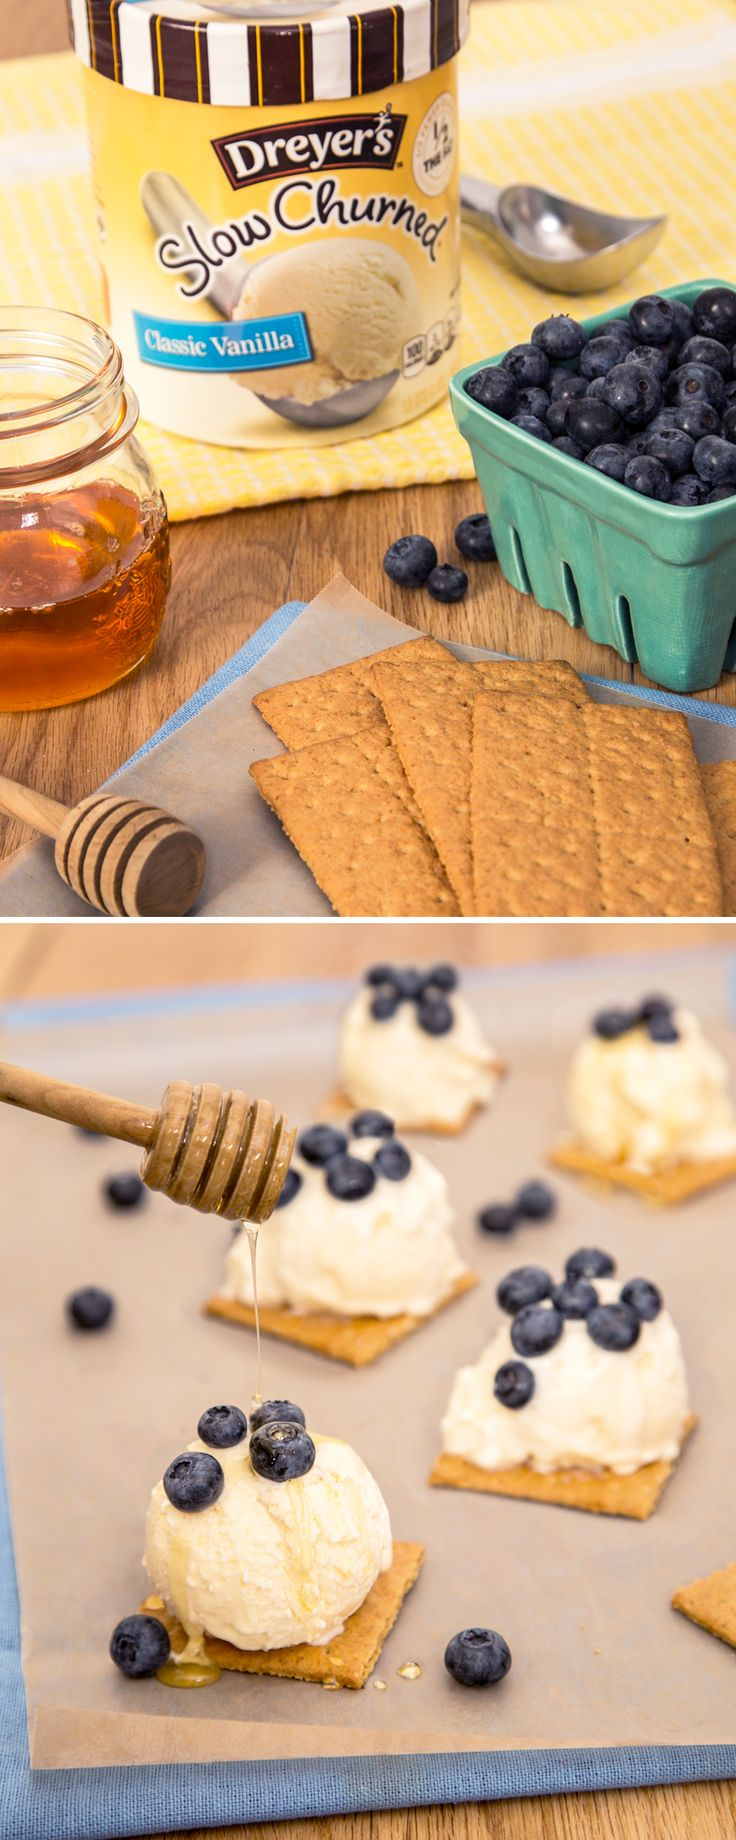 Dreyer's Ice Cream Honey Crisps: Put a sweet spin on snack time with this easy, no-bake dessert recipe! Simply place a scoop of Dreyer's Slow Churned Classic Vanilla Ice Cream on top of crispy graham crackers! In ths summer, your kids are sure to enjoy topping the treat with fresh blueberries and honey drizzle.